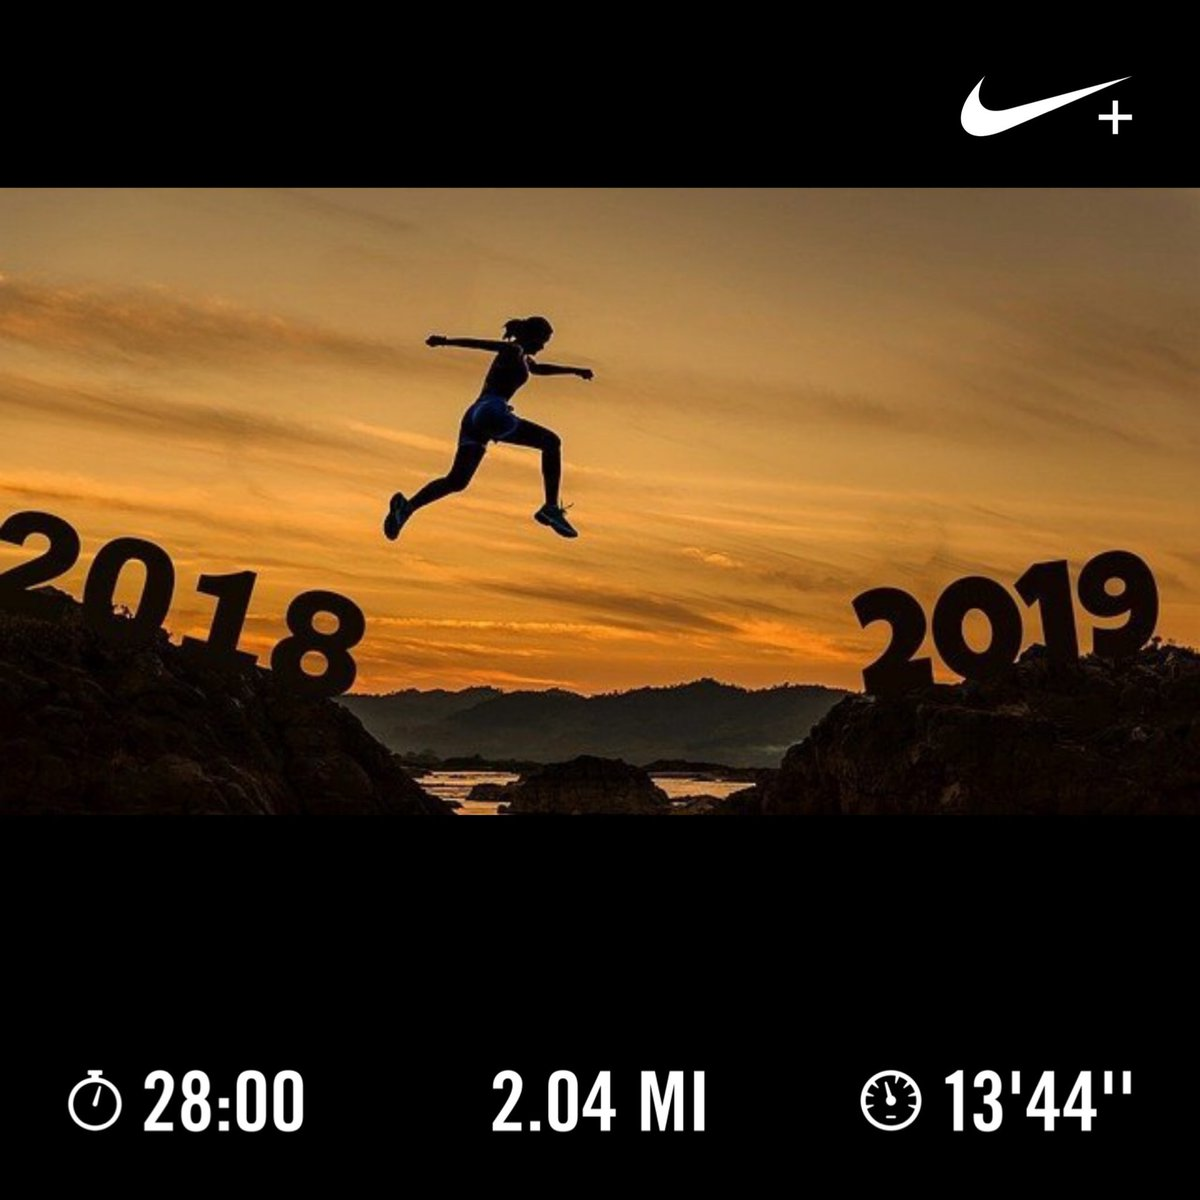 #Tuesday: First run of the Year! — Wifey pushed me to go to the gym and knock out some cardio. I'm dead tired. — #nikerunning #nikeplus #nikerunclub #nrc #cardio #running #instarunners #treadmillwarrior #fatdadgettingfit #healthydad #dadbod #happynewyear